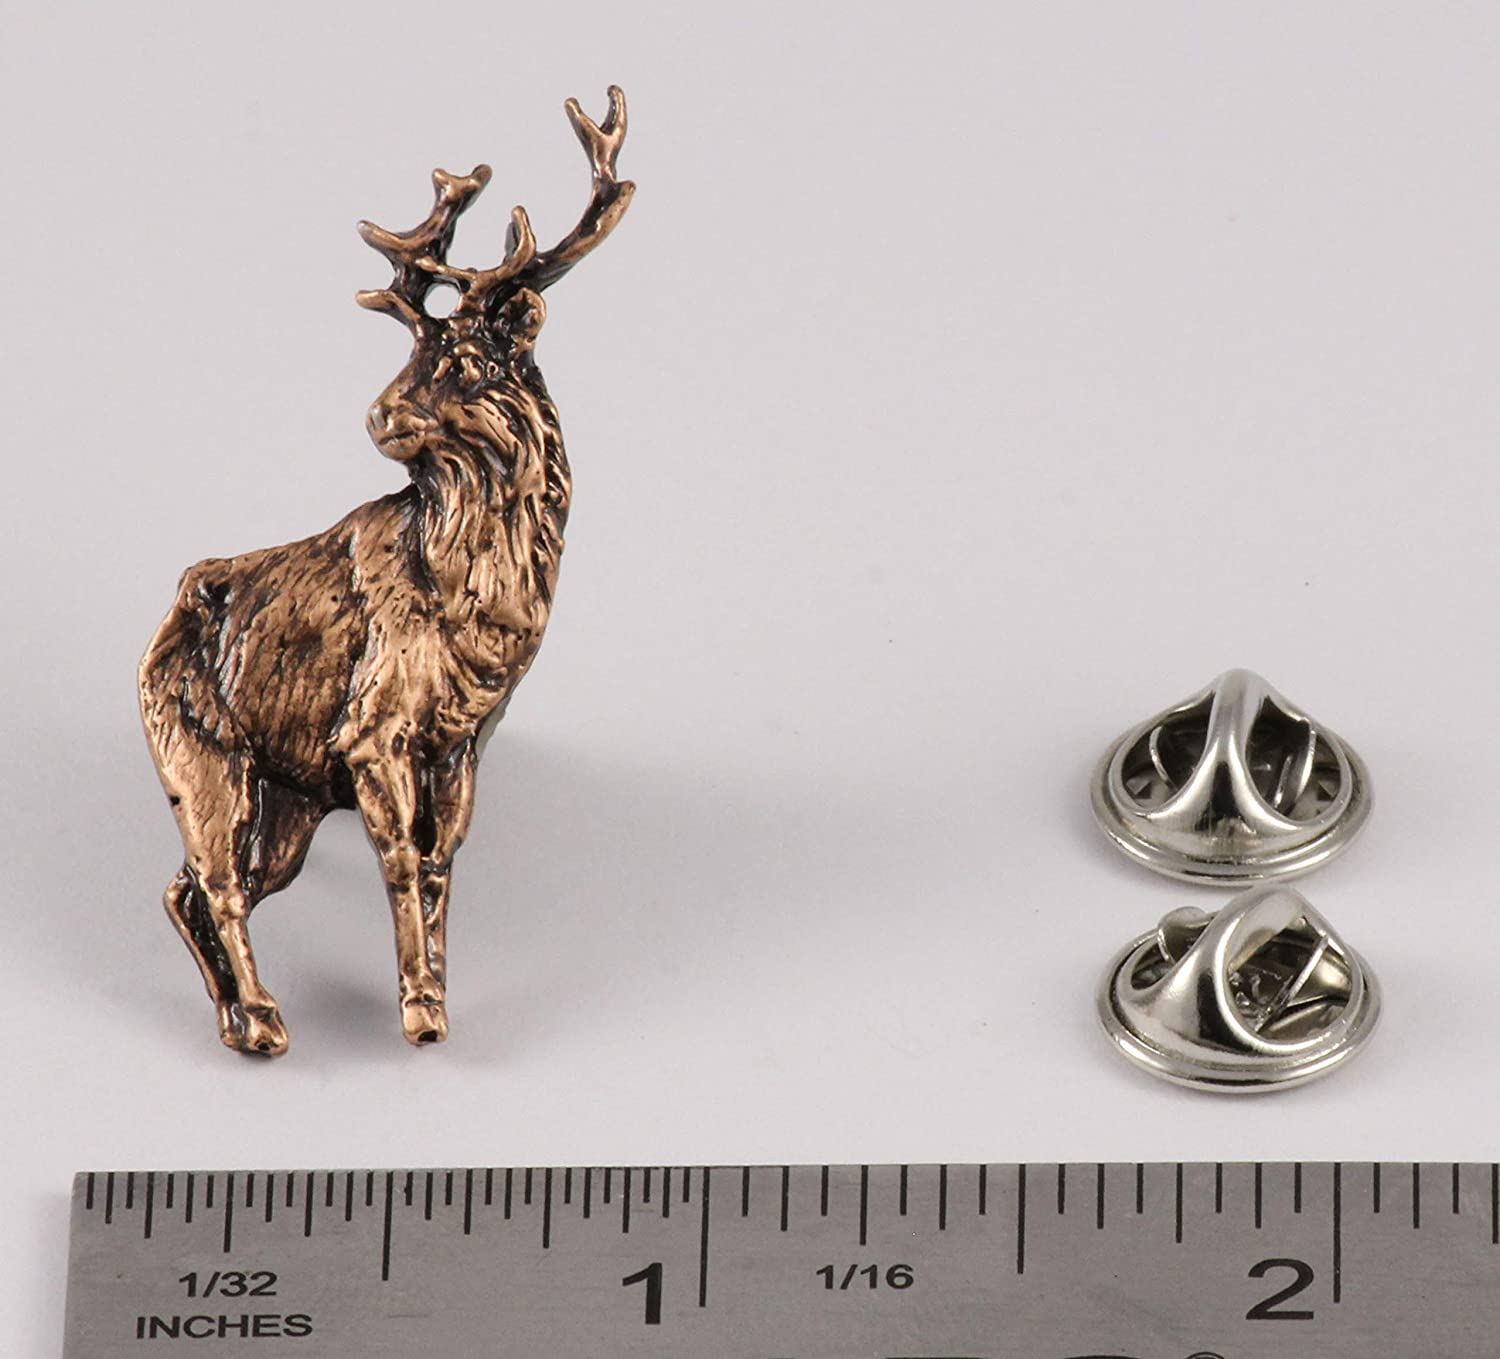 Brooch M019 Jewelry Red Deer Stag Full Body Mammal Pewter Lapel Pin